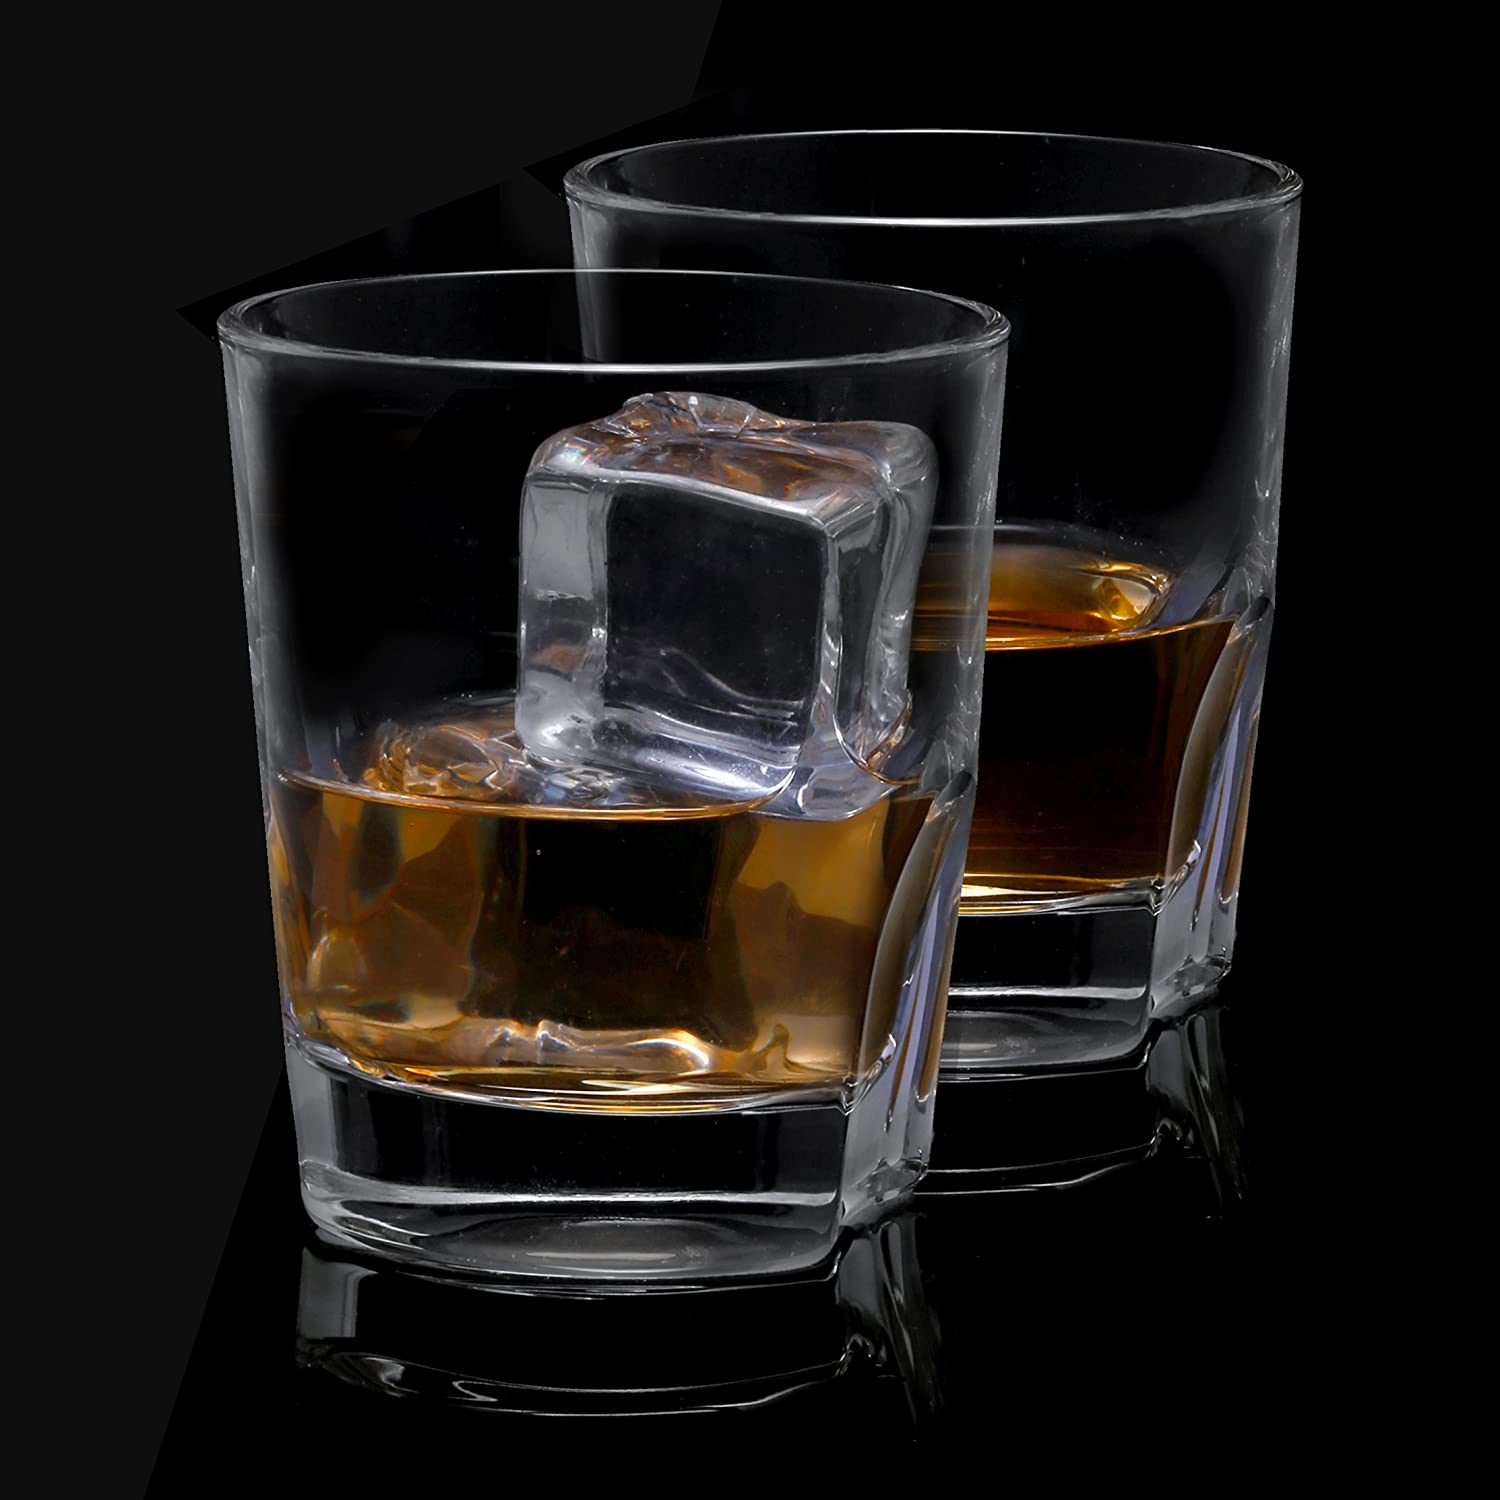 Ultra Clear Crystal Scotch Glass for Bourbon and Liquor Set Of 2 non-leaded crystal Glassware JC102113 JoyJolt Carina Crystal Whiskey Glasses Old Fashioned Whiskey Glass 8.4 Ounce